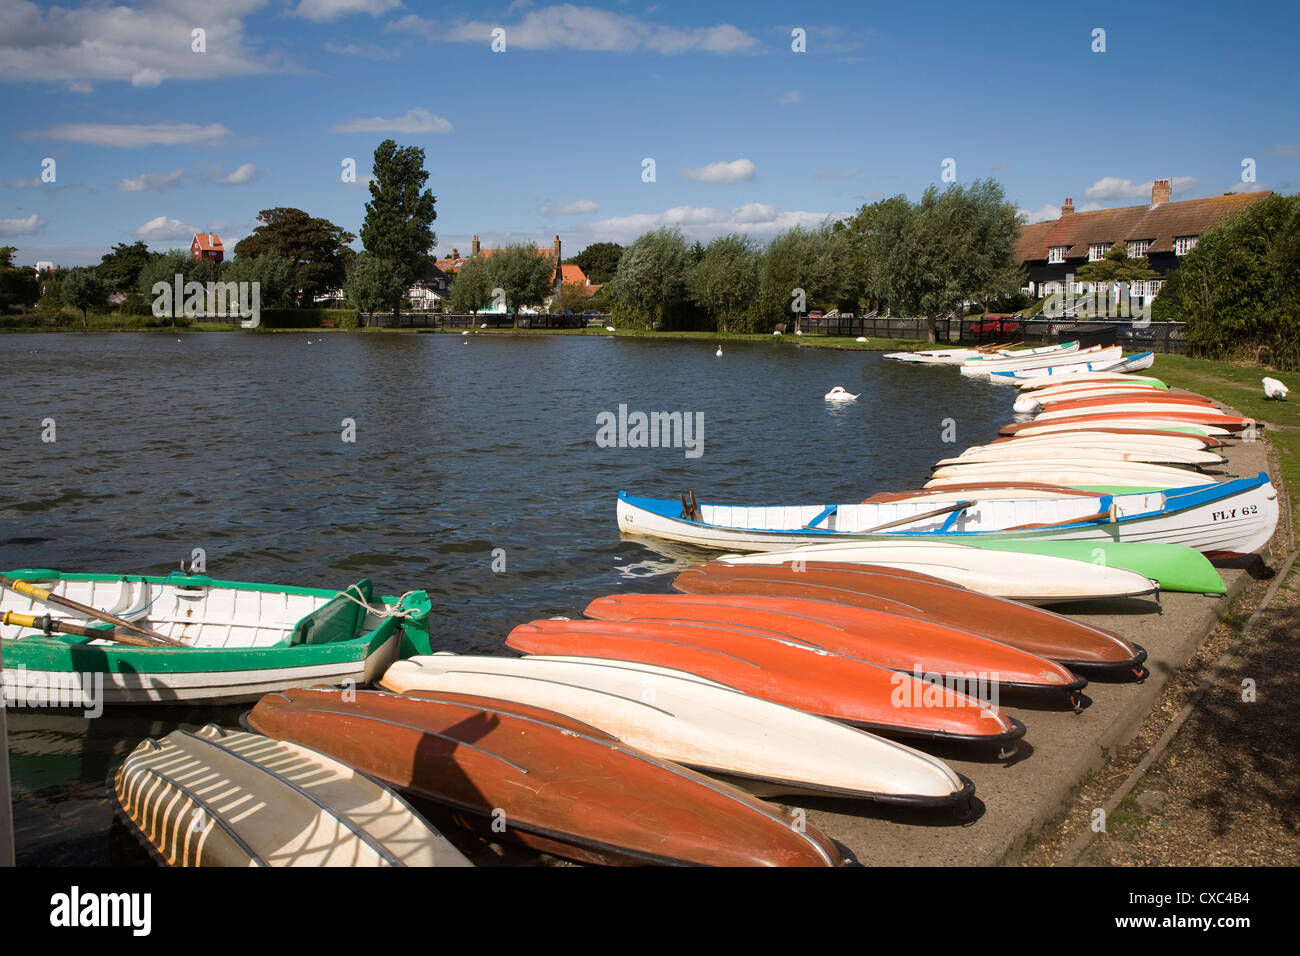 Colourful rowing boats on the Meare boating lake Thorpeness Suffolk England - Stock Image